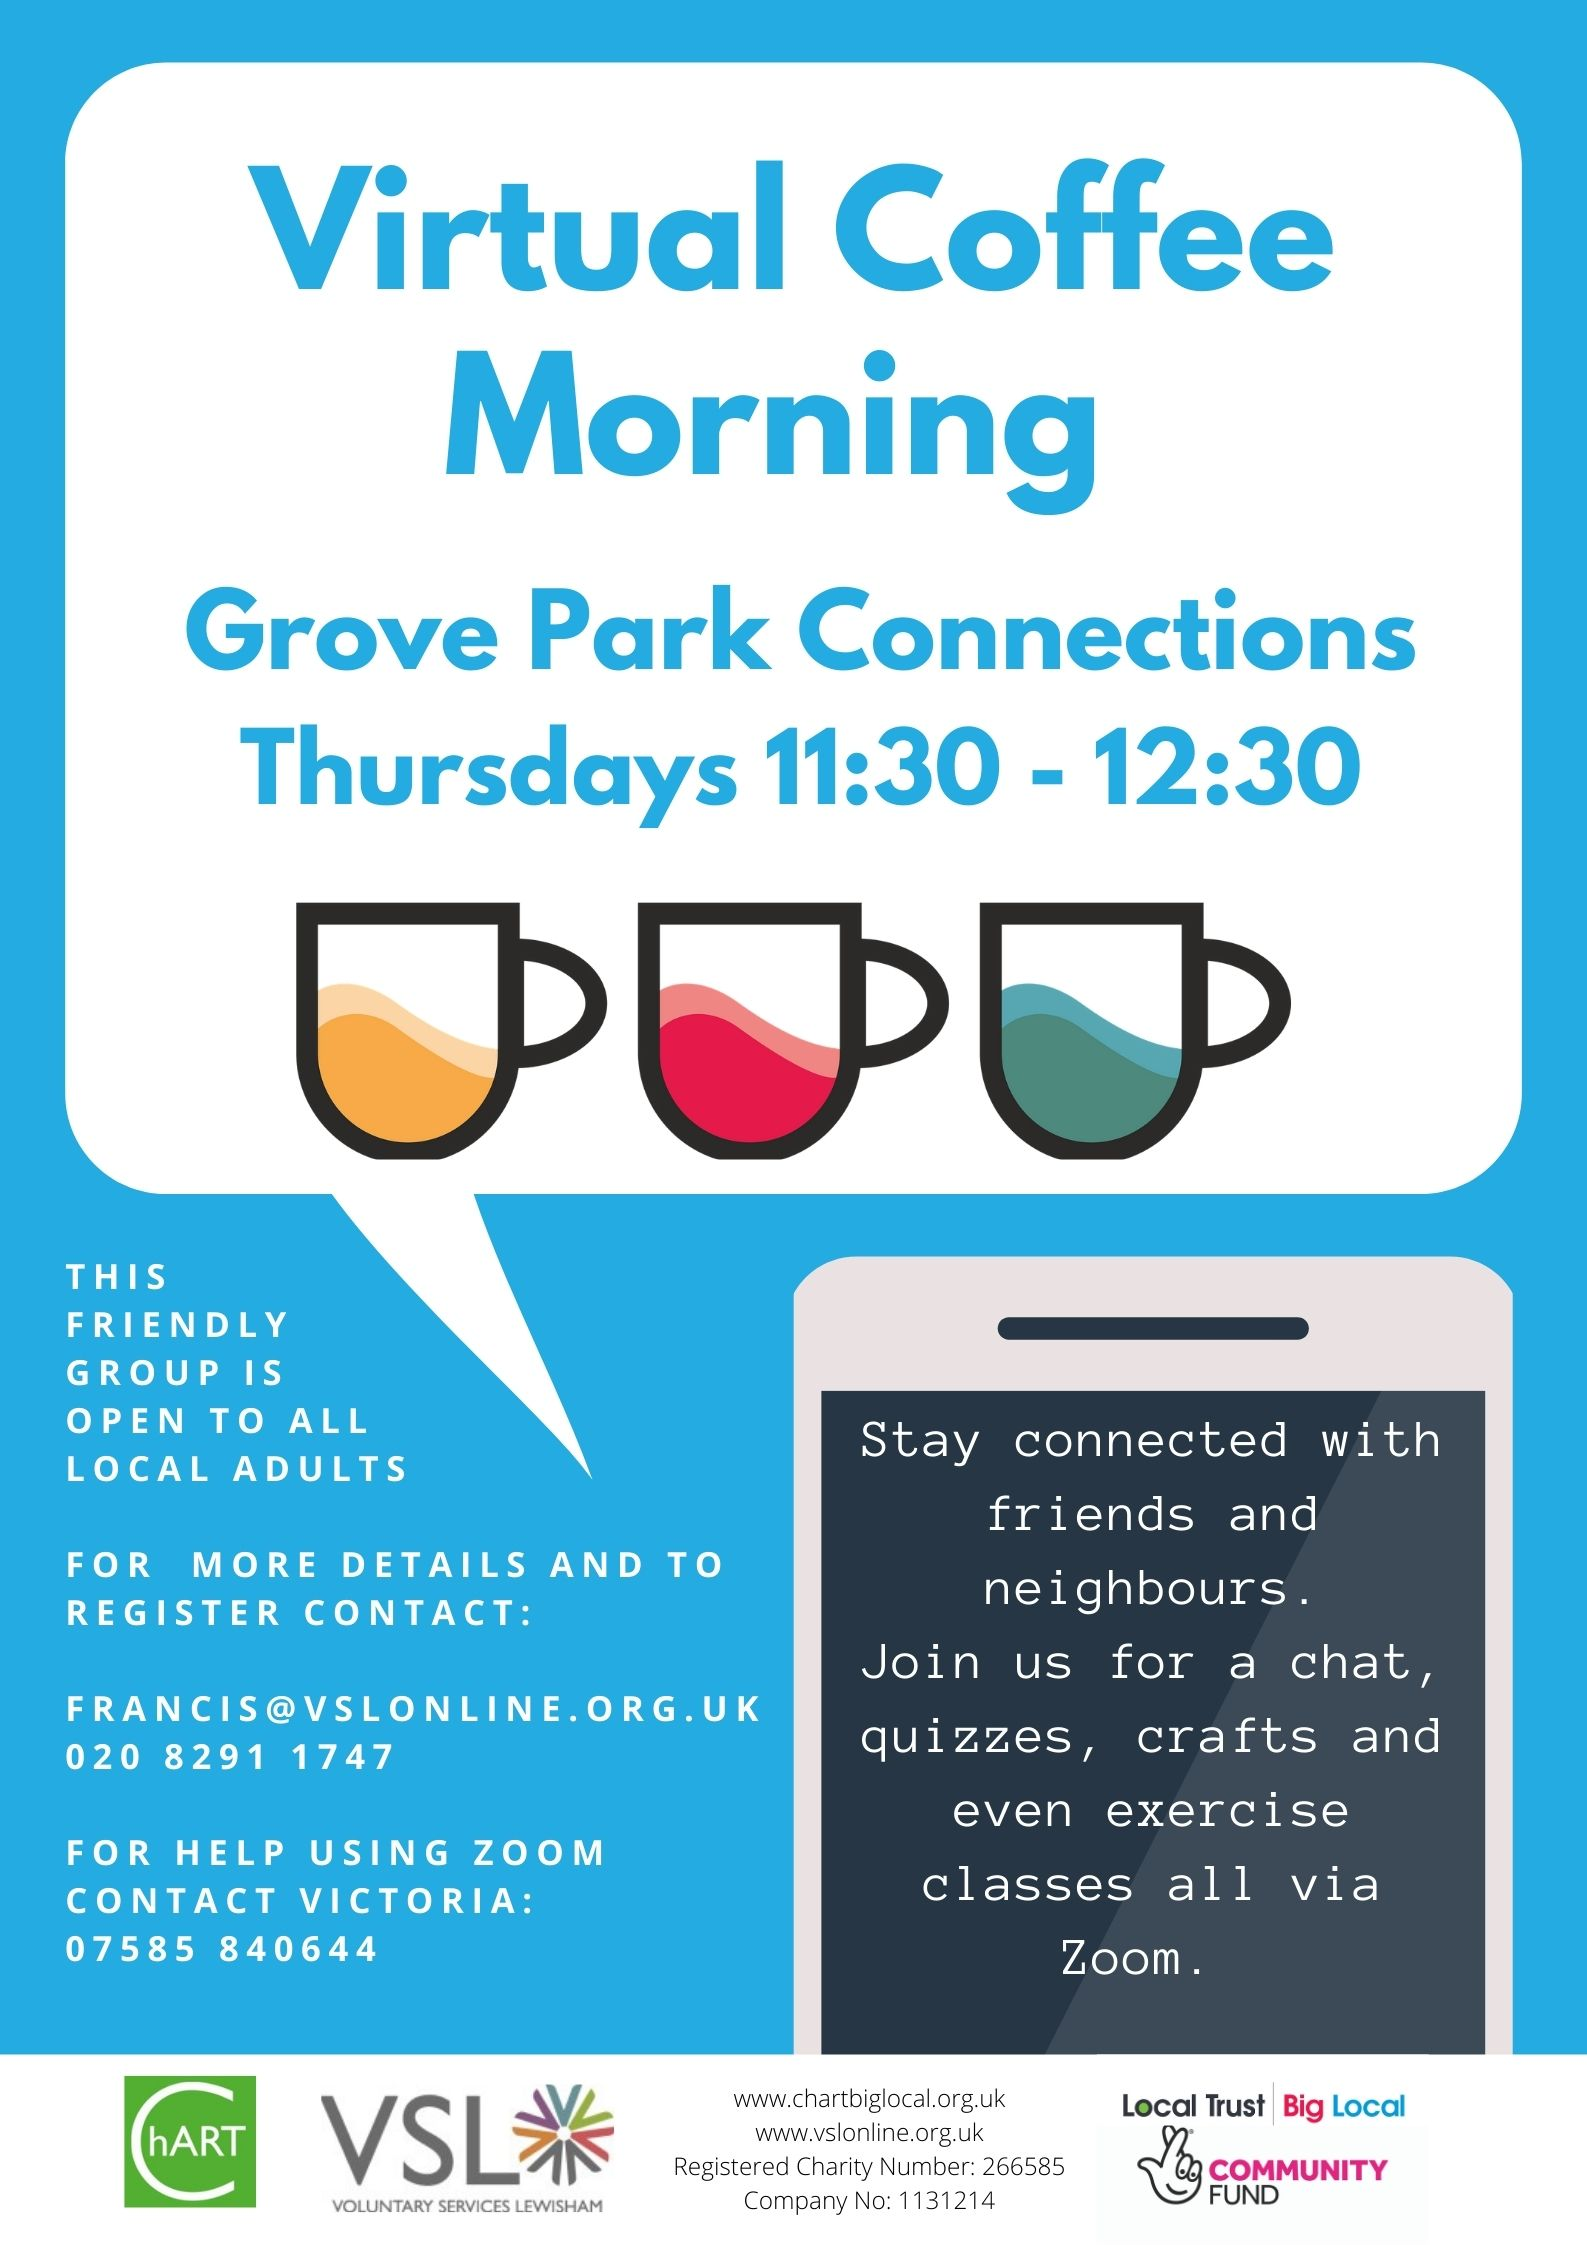 Virtual Coffee Morning GP Connections 2